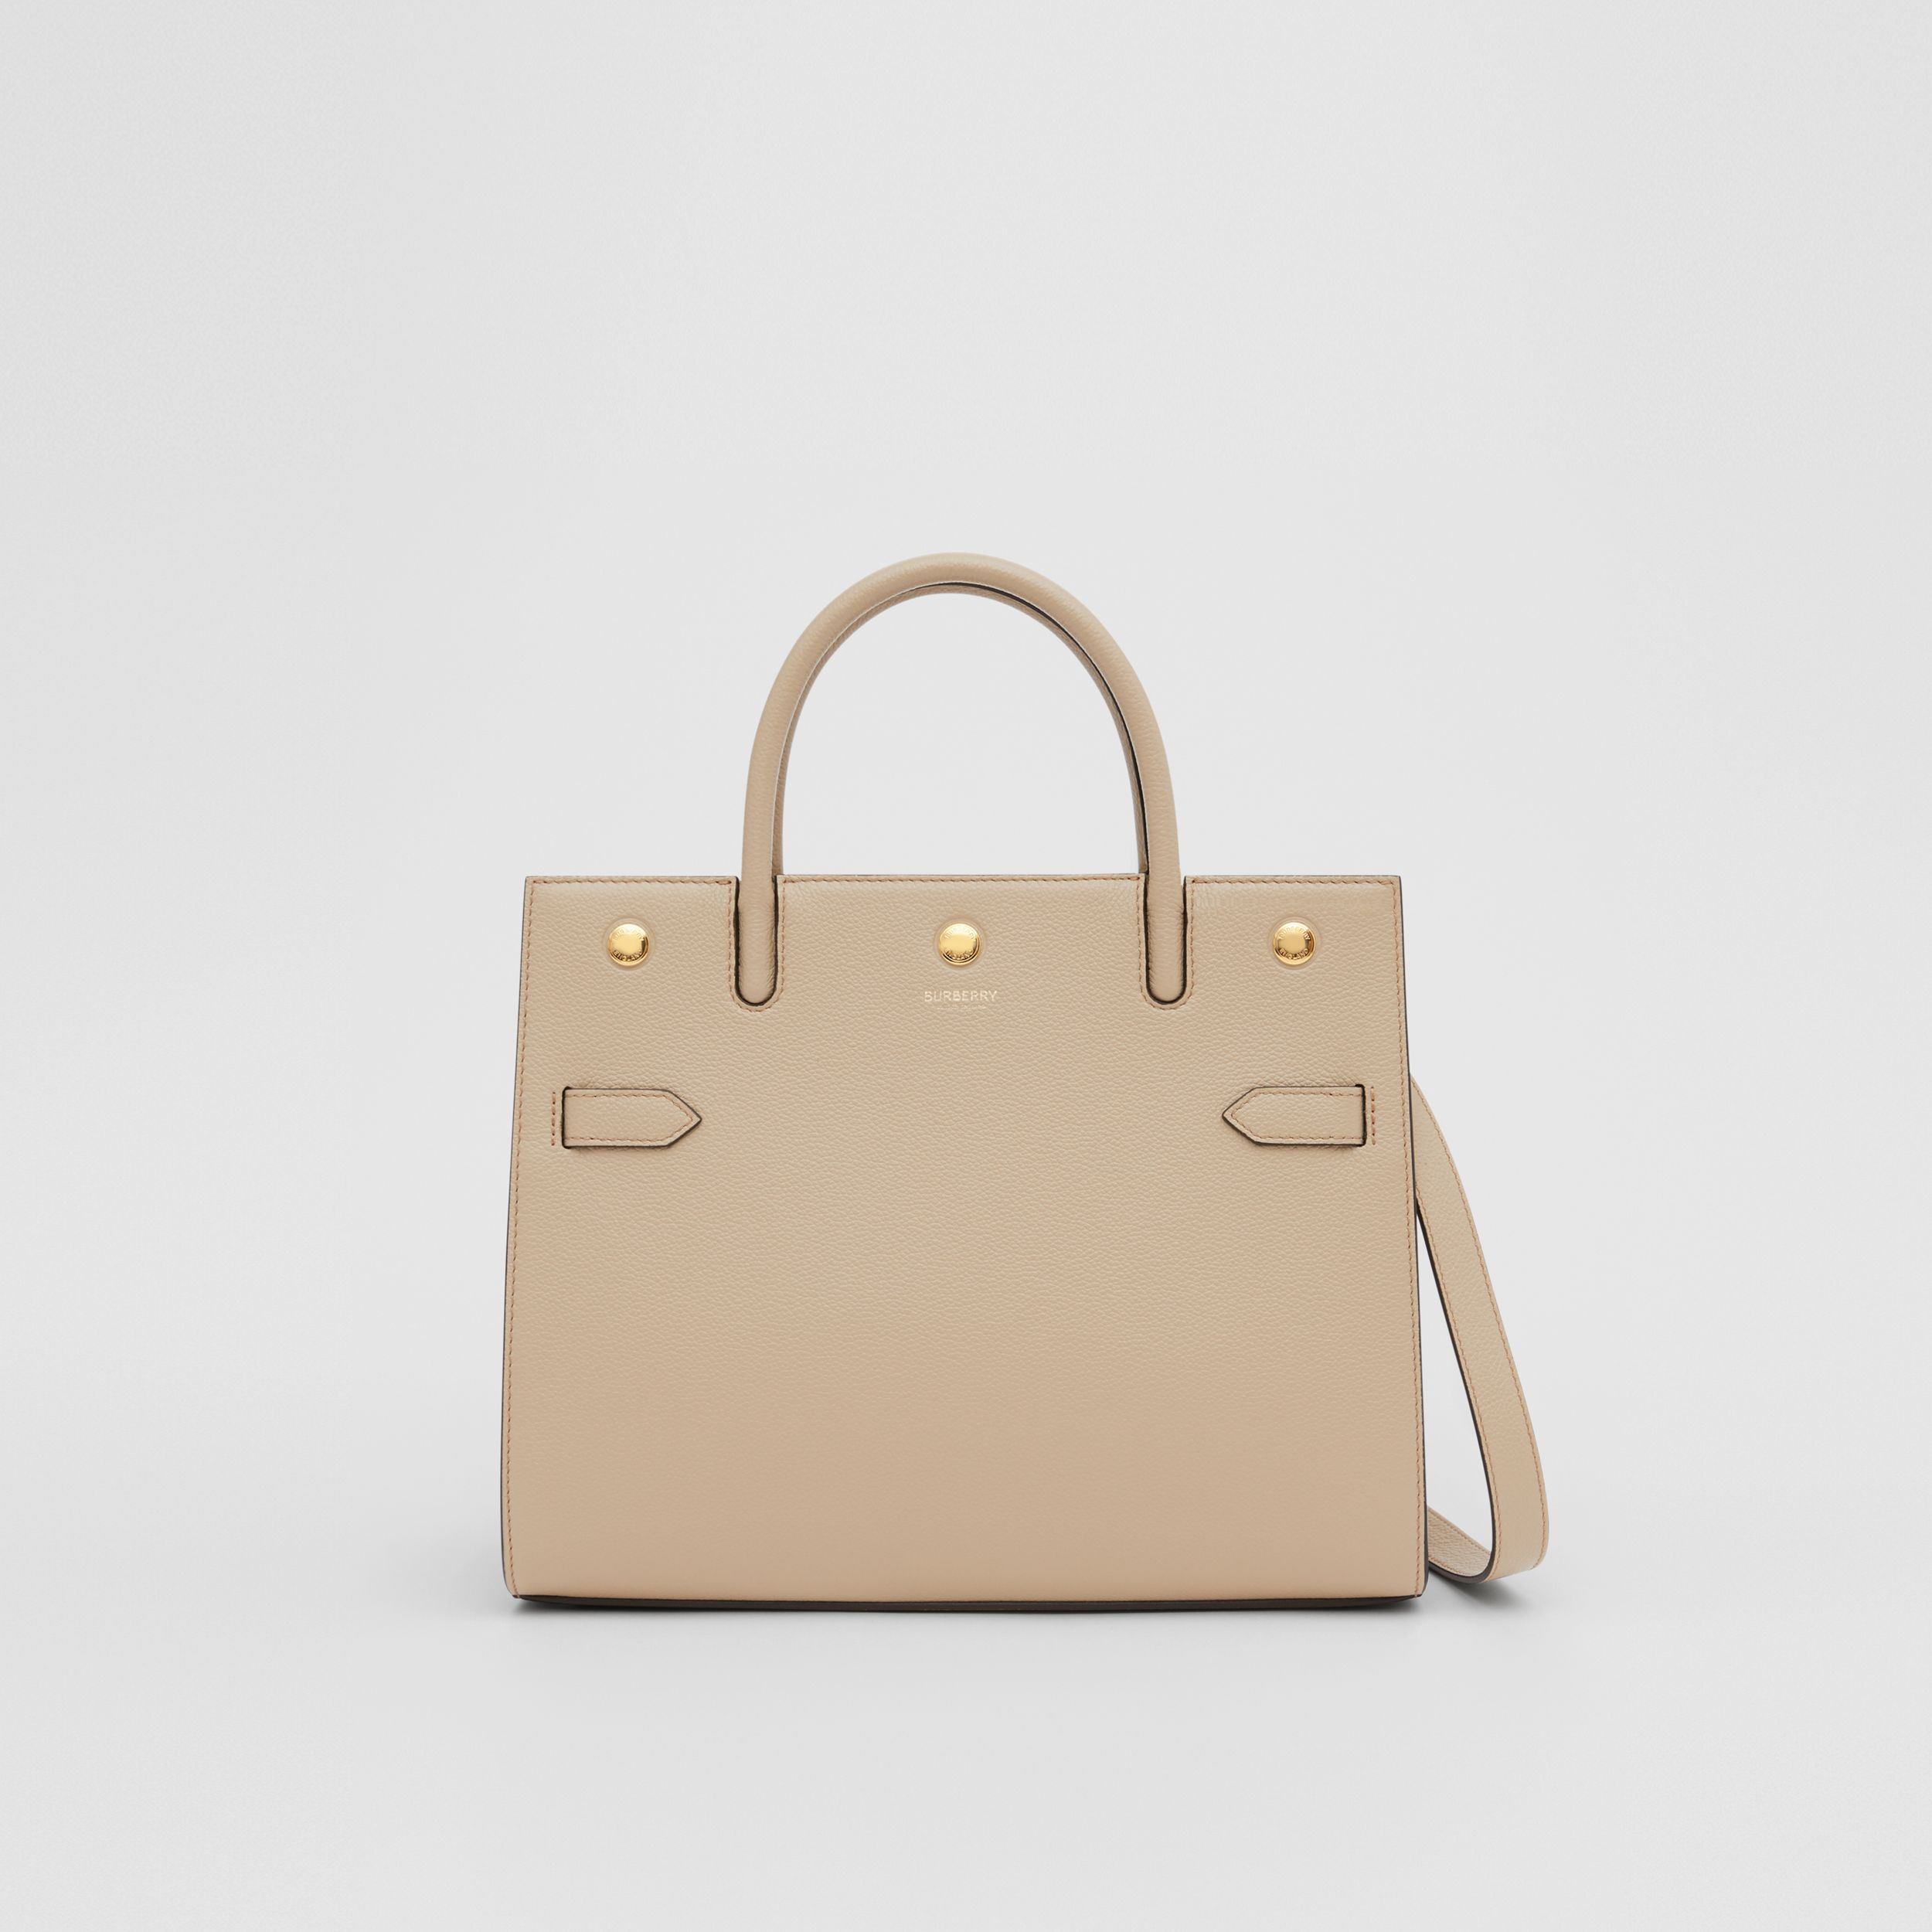 Small Leather Two-handle Title Bag in Light Beige - Women | Burberry Singapore - 1